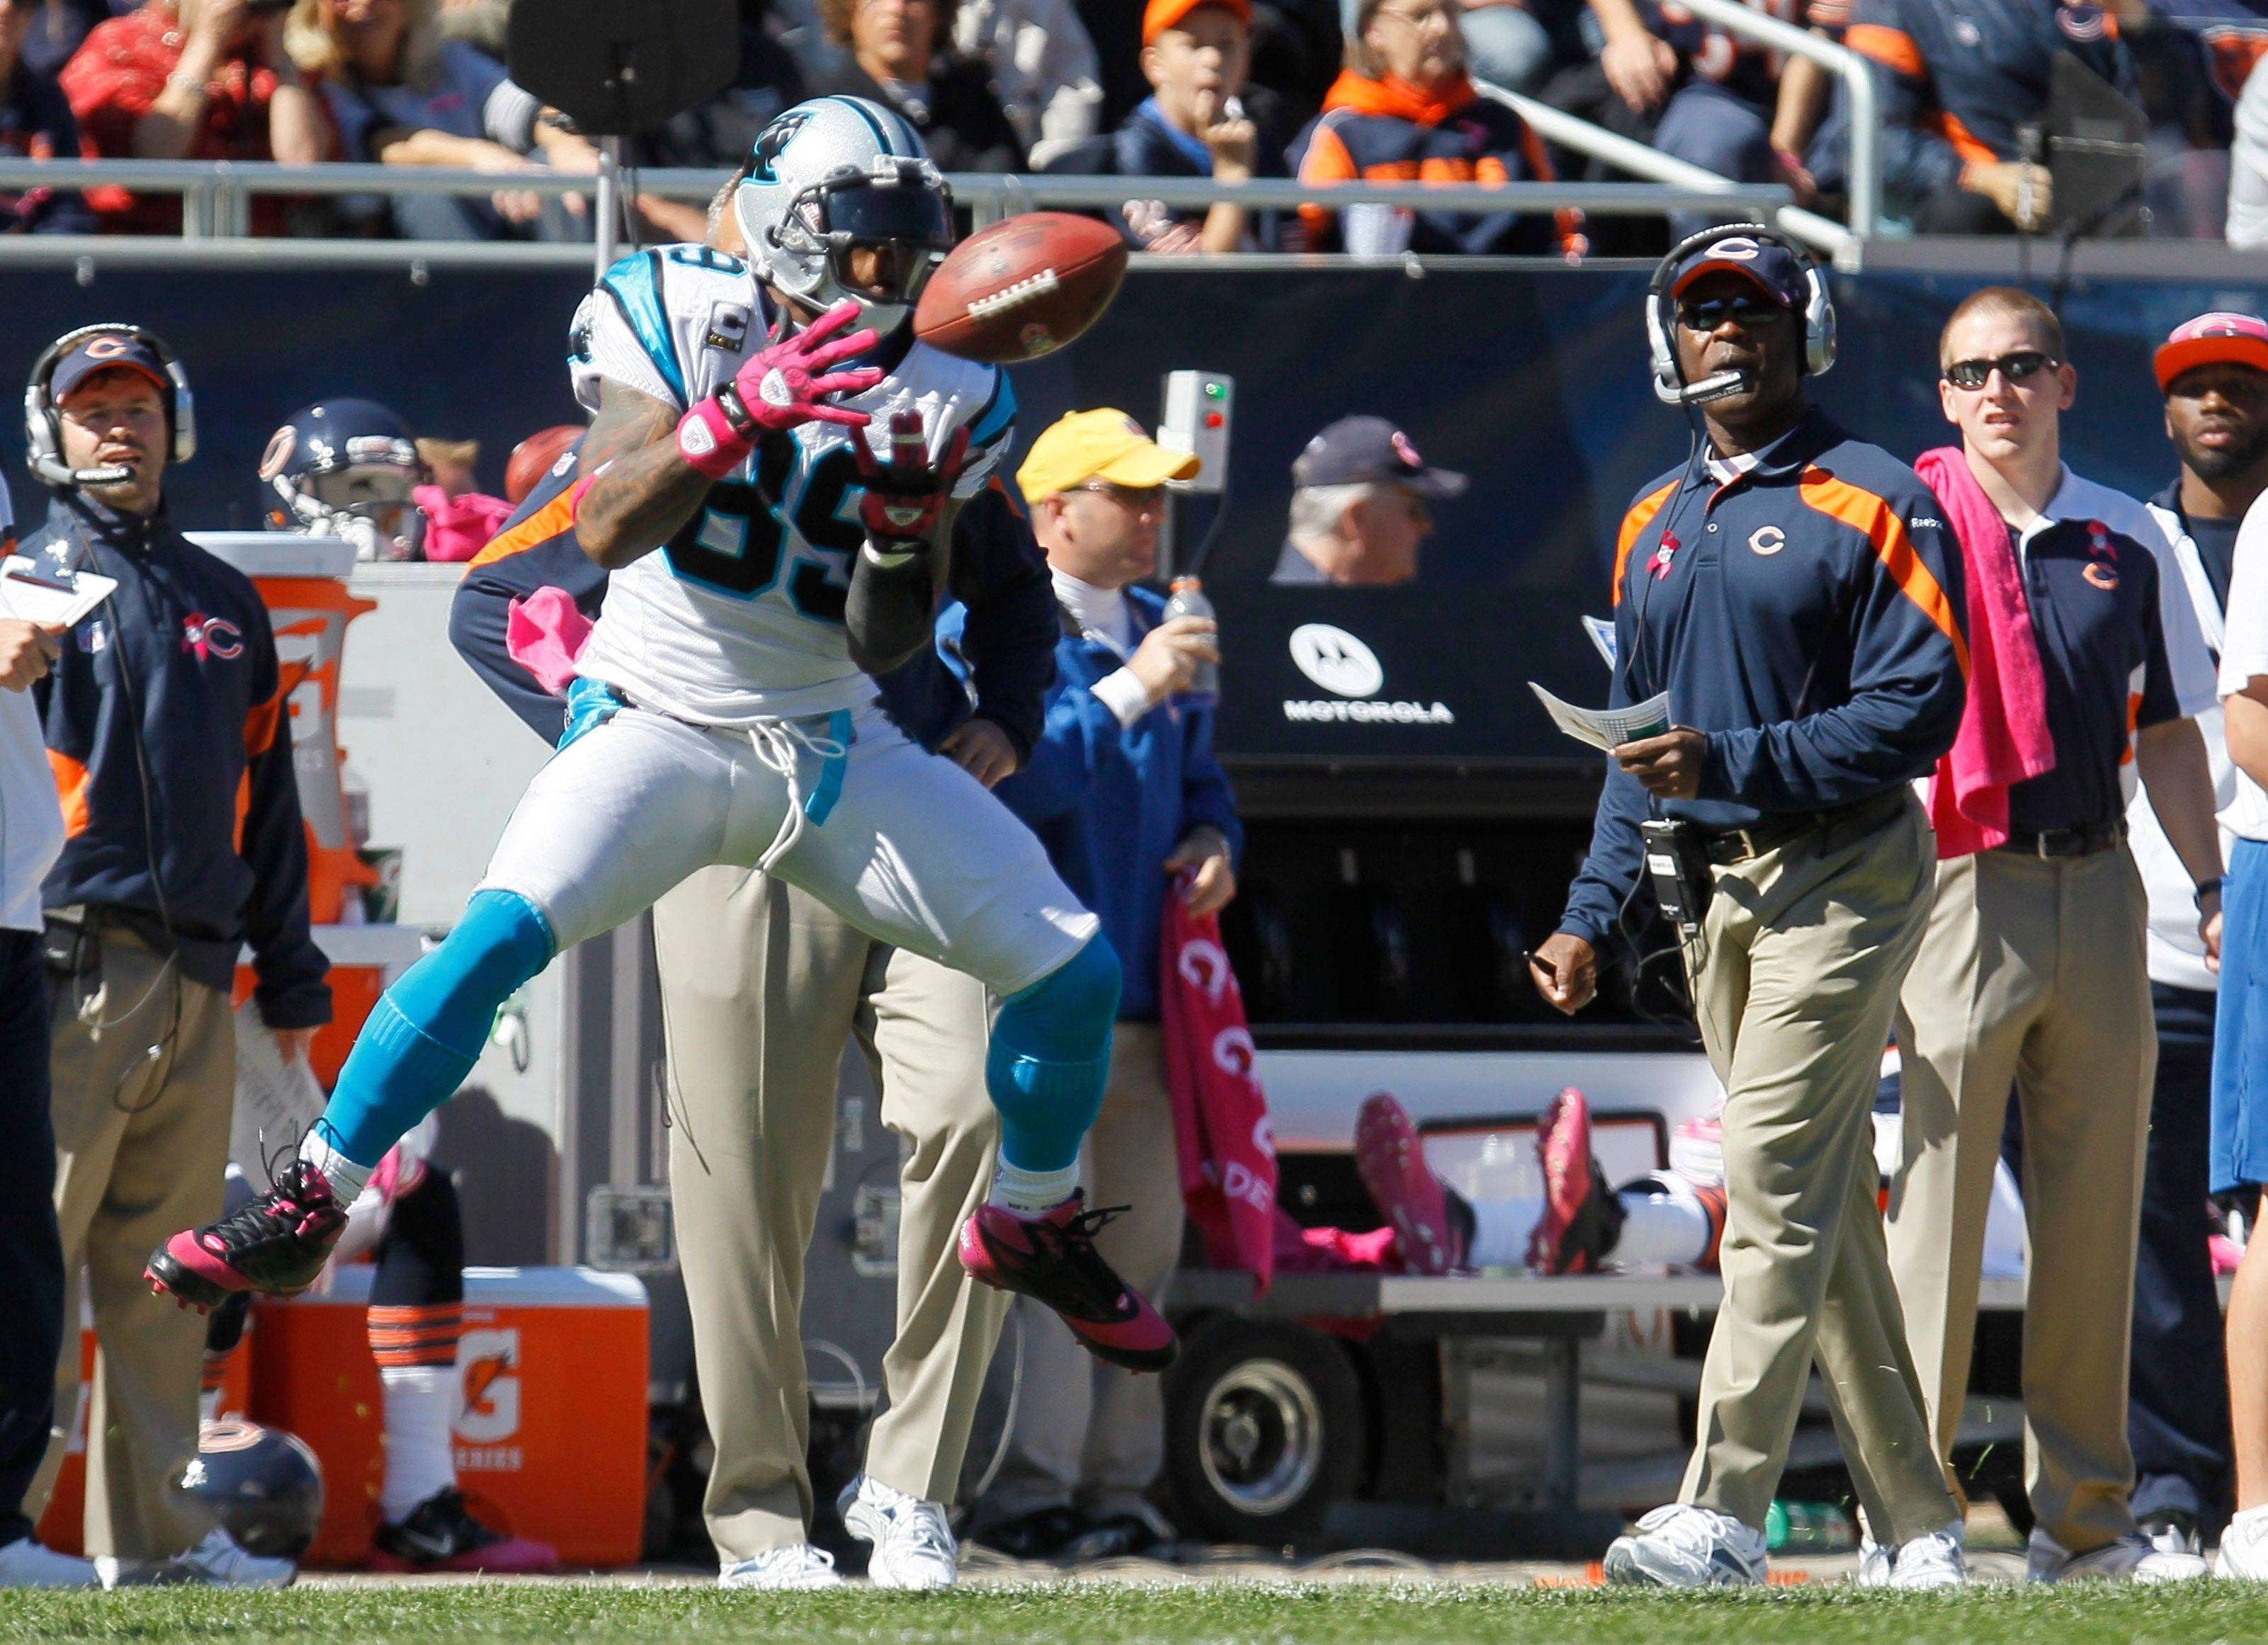 Panthers wide receiver Steve Smith makes a reception in front of Bears coach Lovie Smith in the first half Sunday.